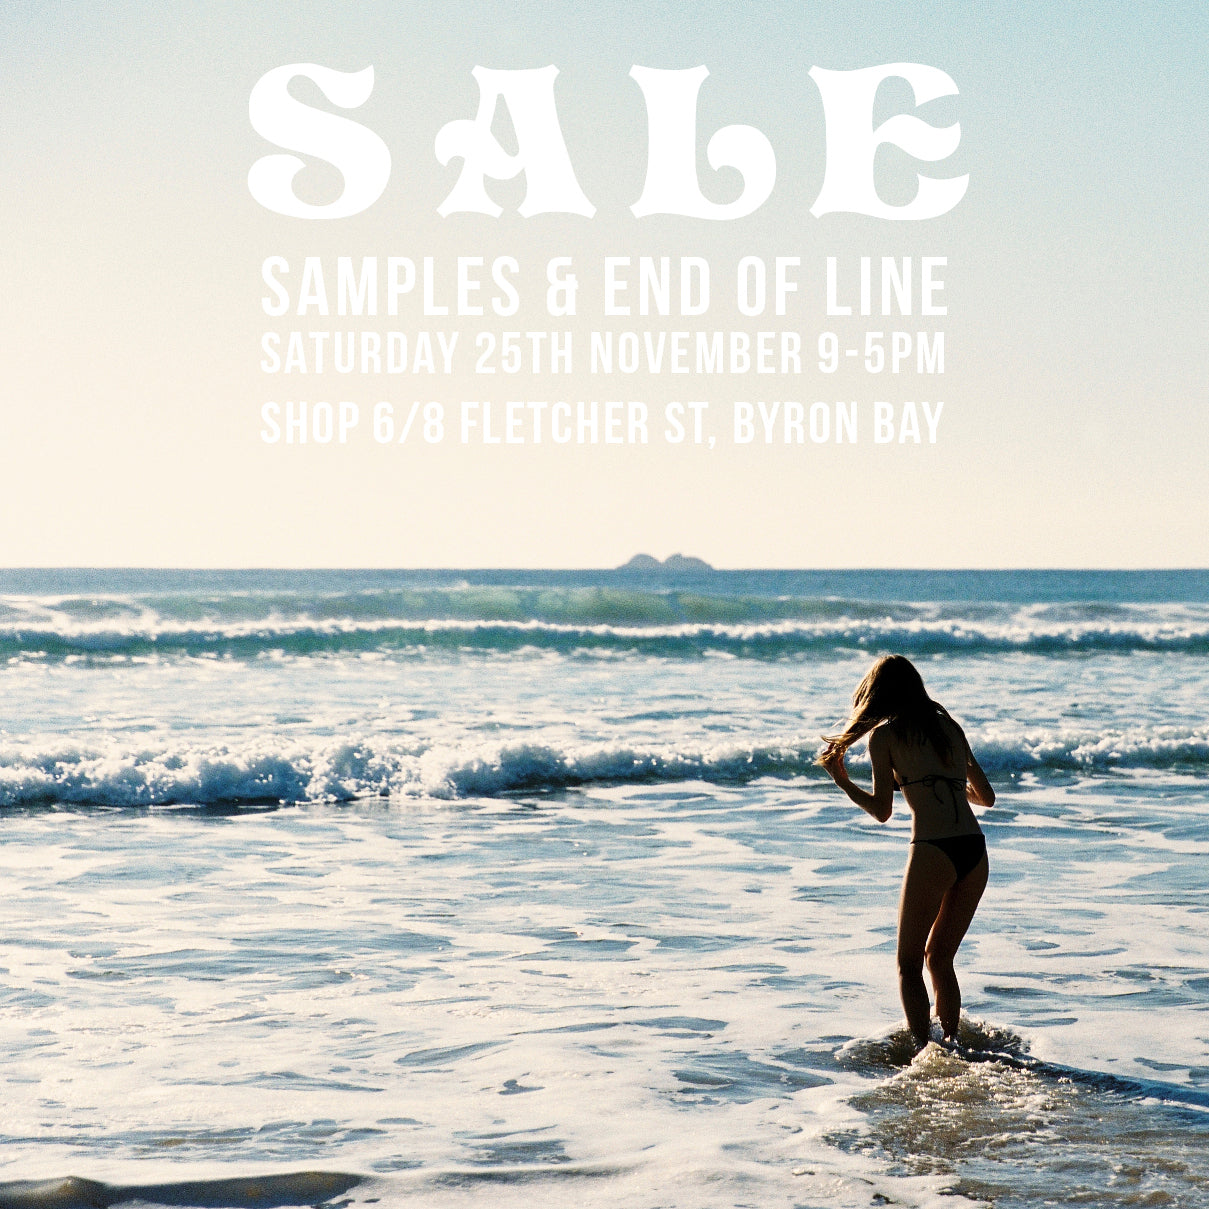 SAMPLES & END OF LINE SALE